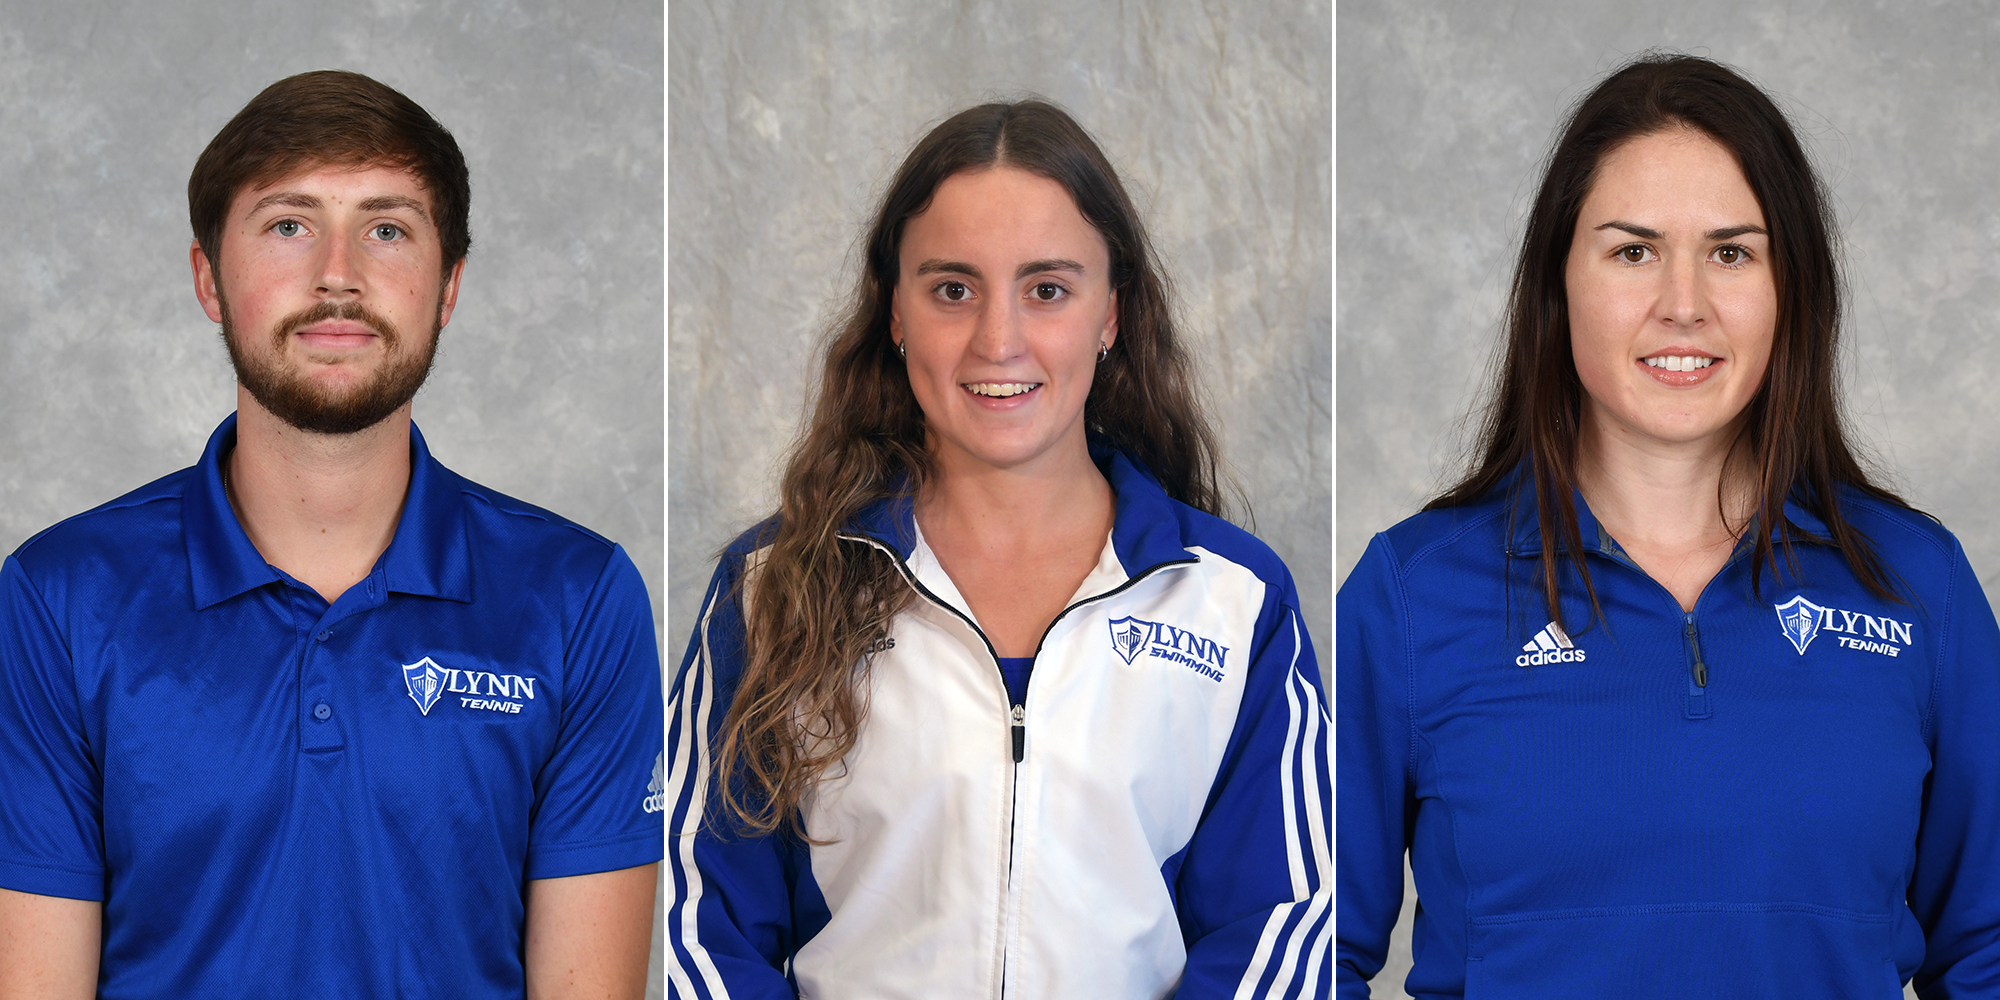 Lynn Trio Secures SSC Player of the Week Accolades